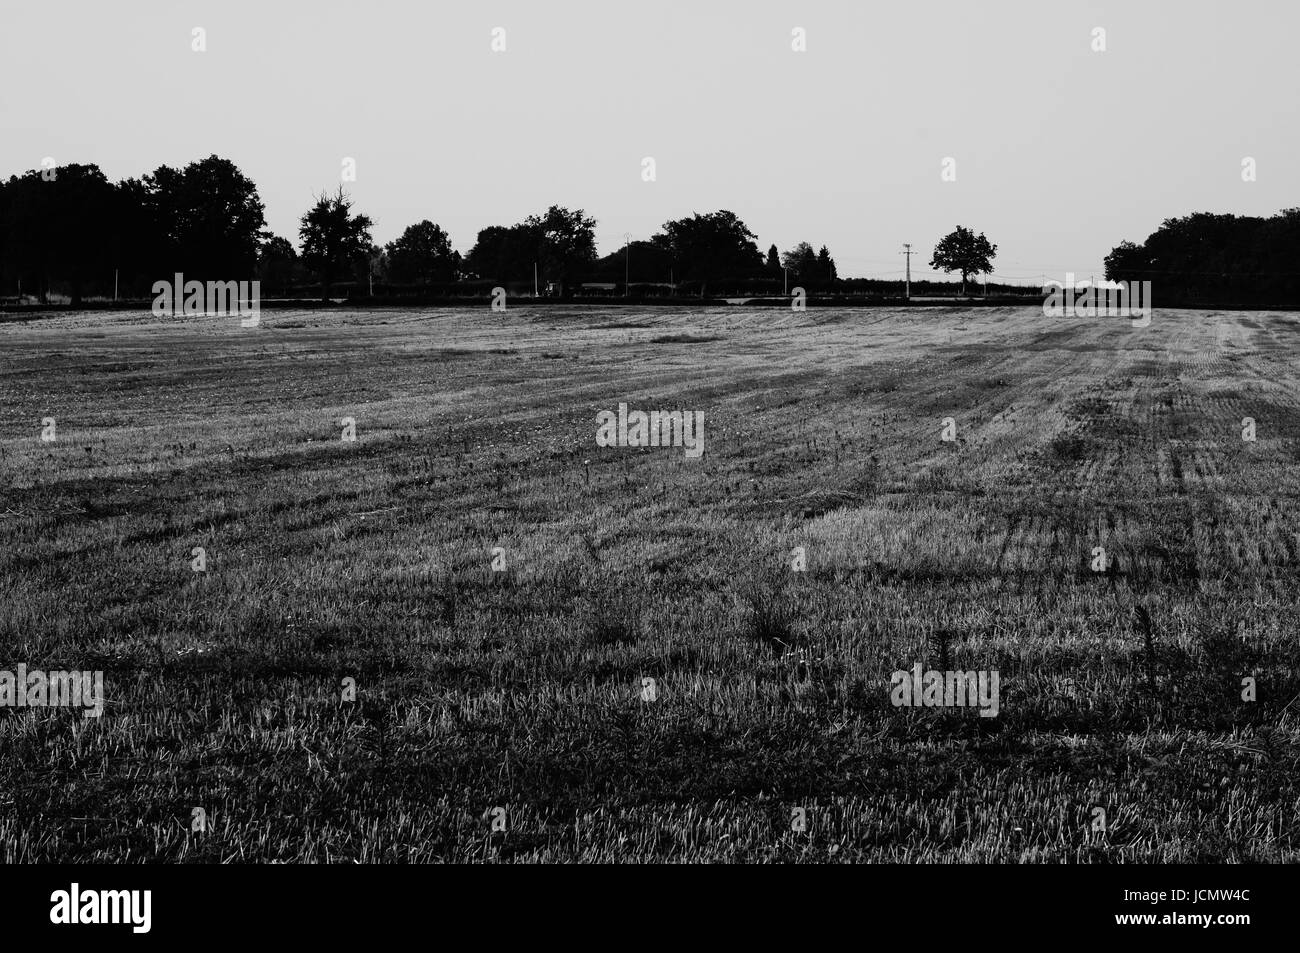 Black and white photo of a wheat field in Southern France - Stock Image